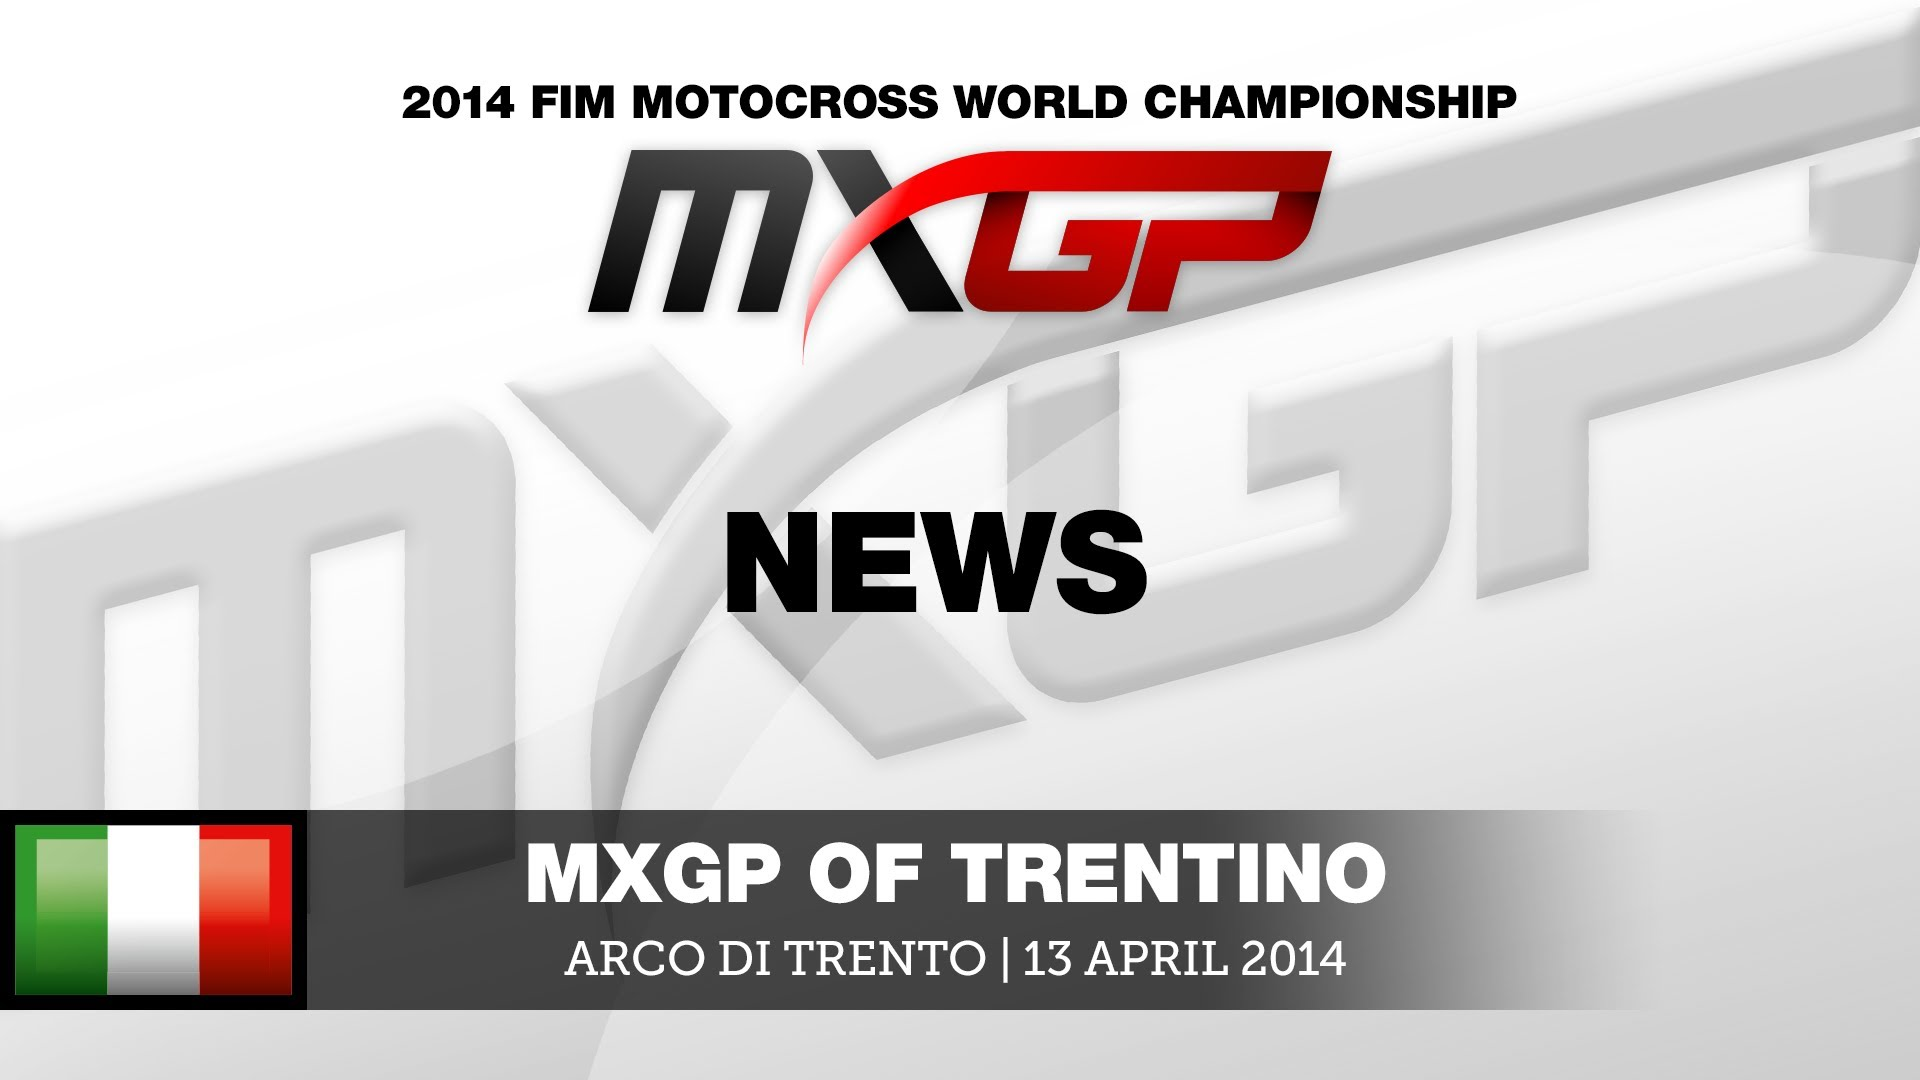 MXGP of Trentino 2014 Highlights